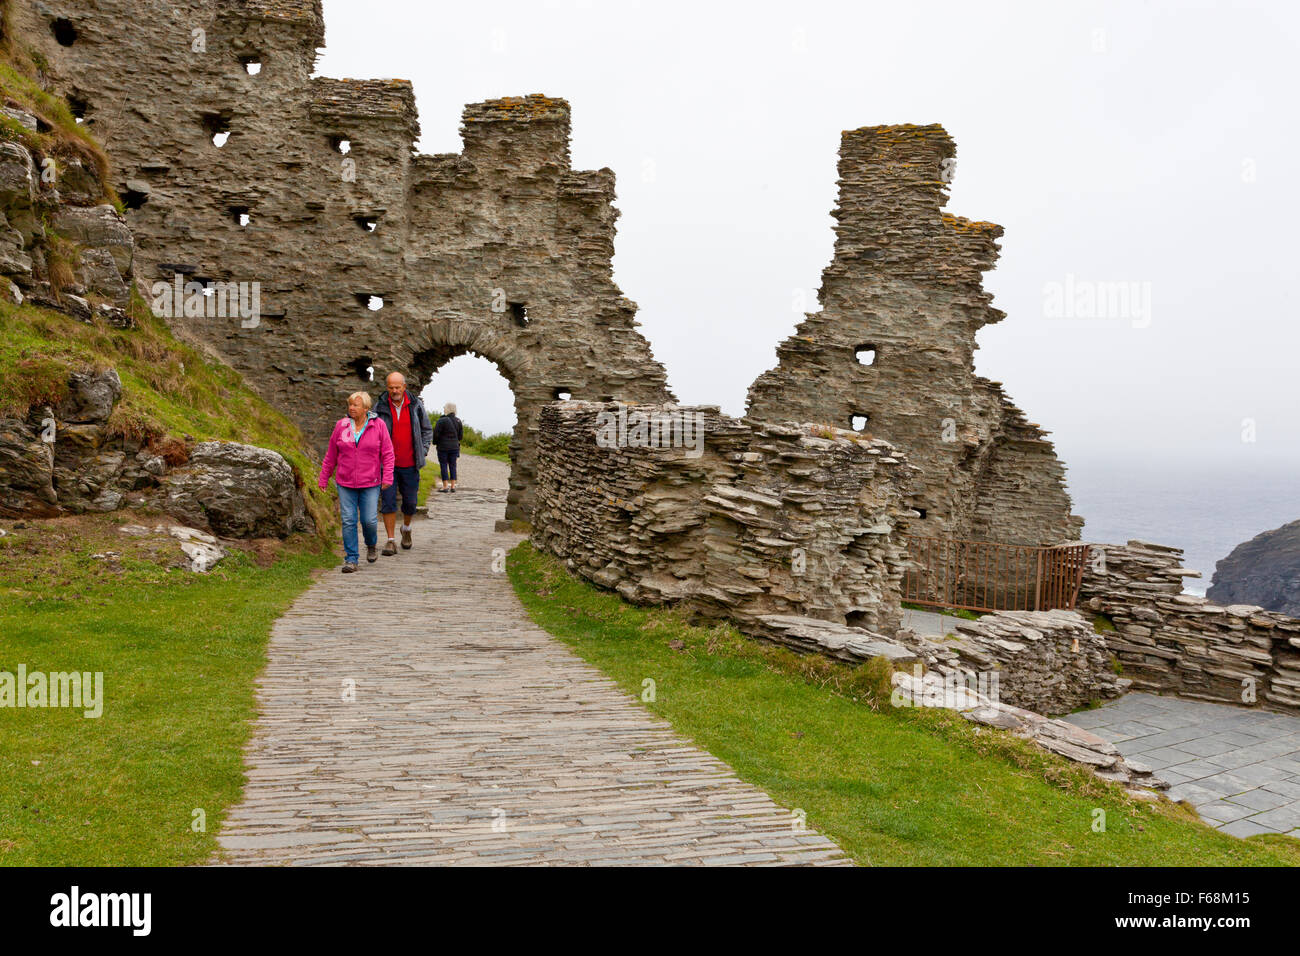 The ruins of Tintagel Castle (English Heritage) in Cornwall, England, UK Stock Photo